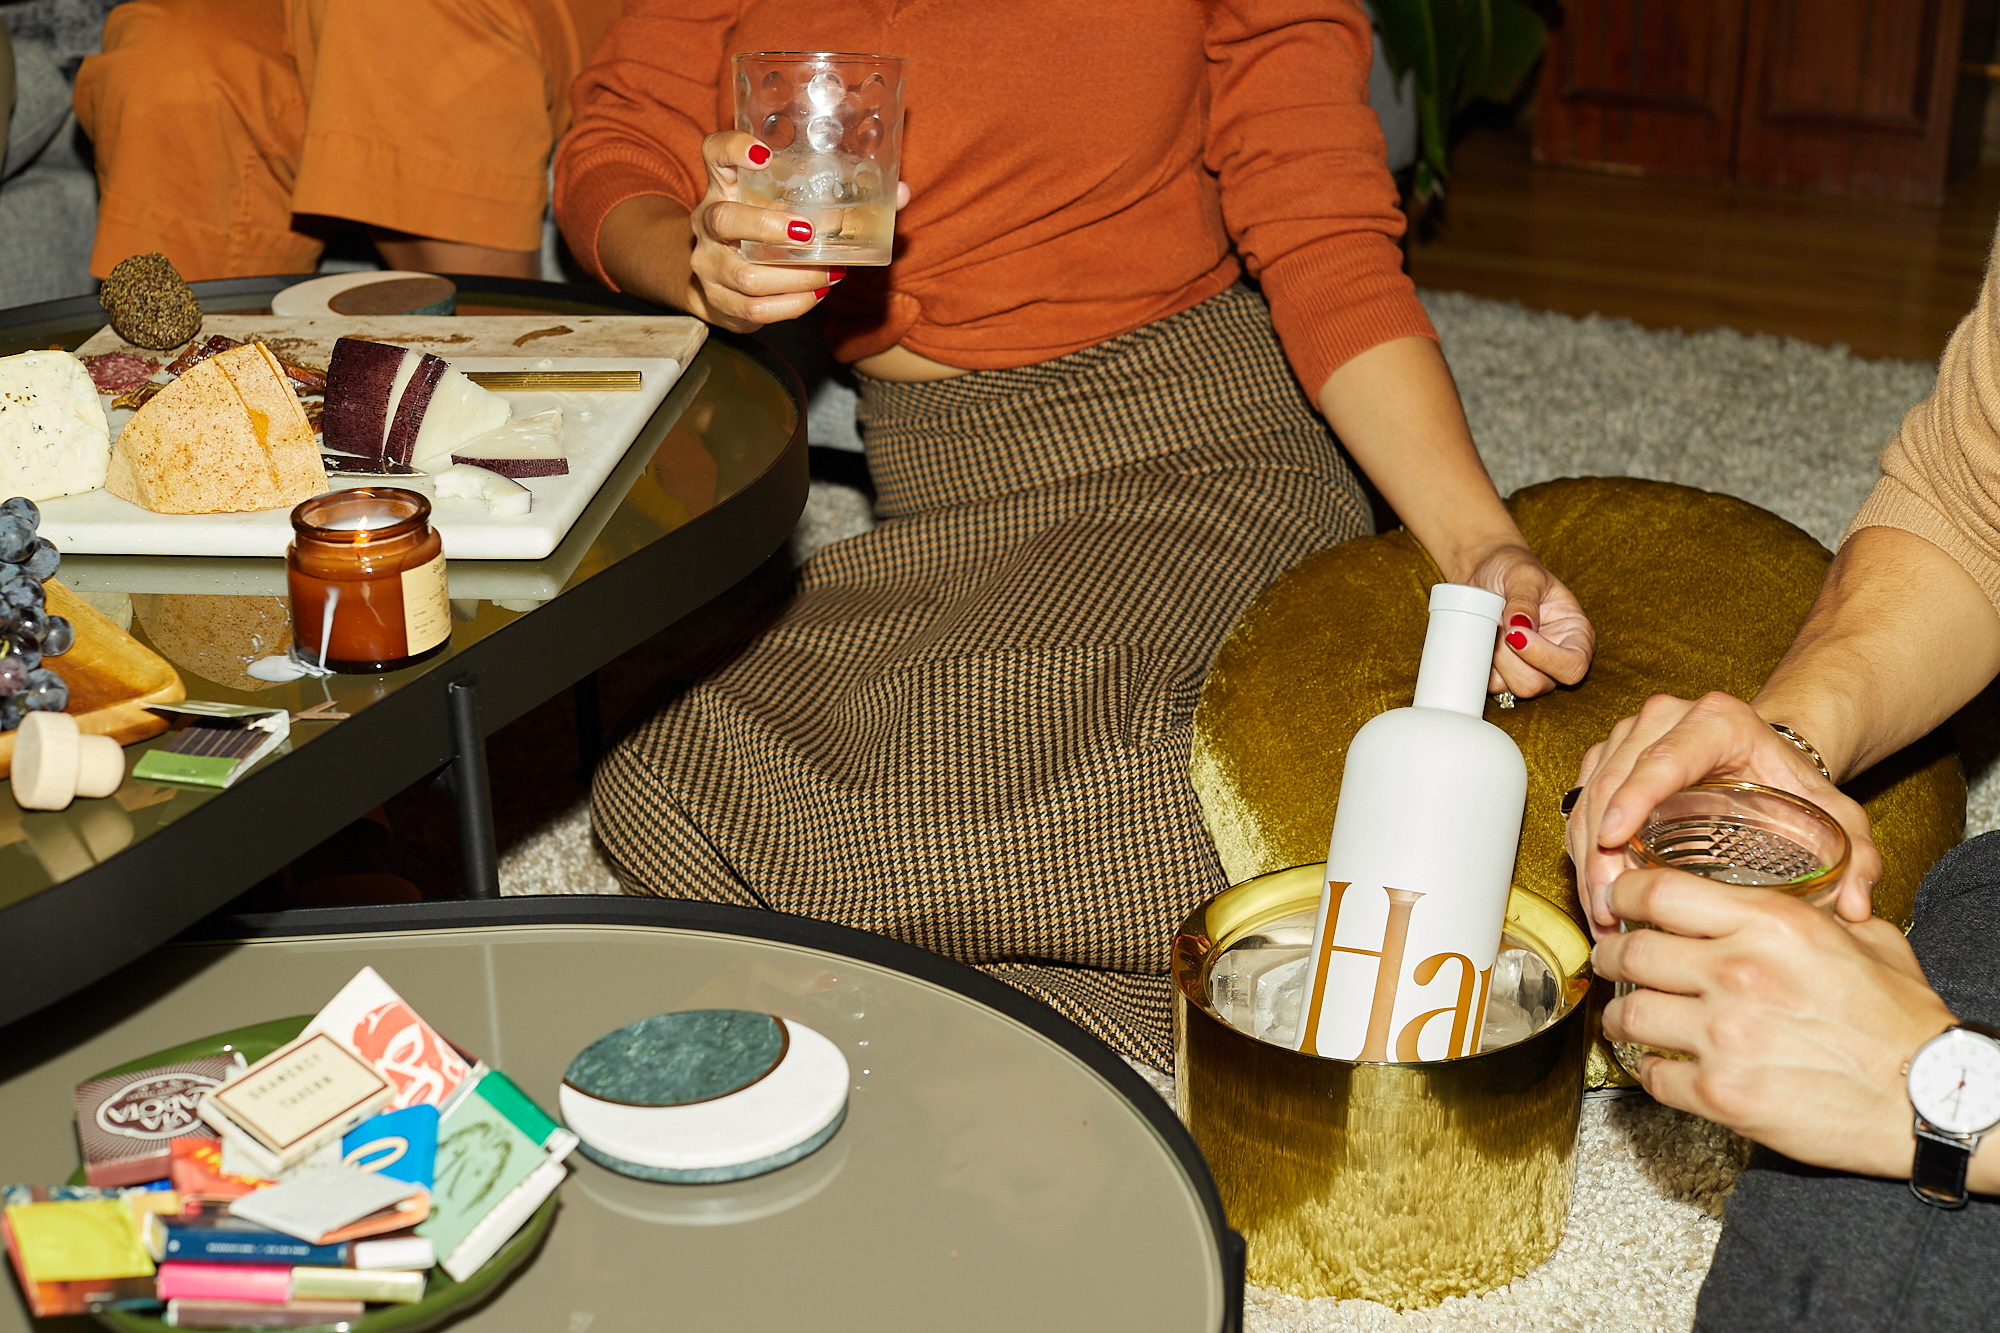 Why are so many brands pivoting to coziness?